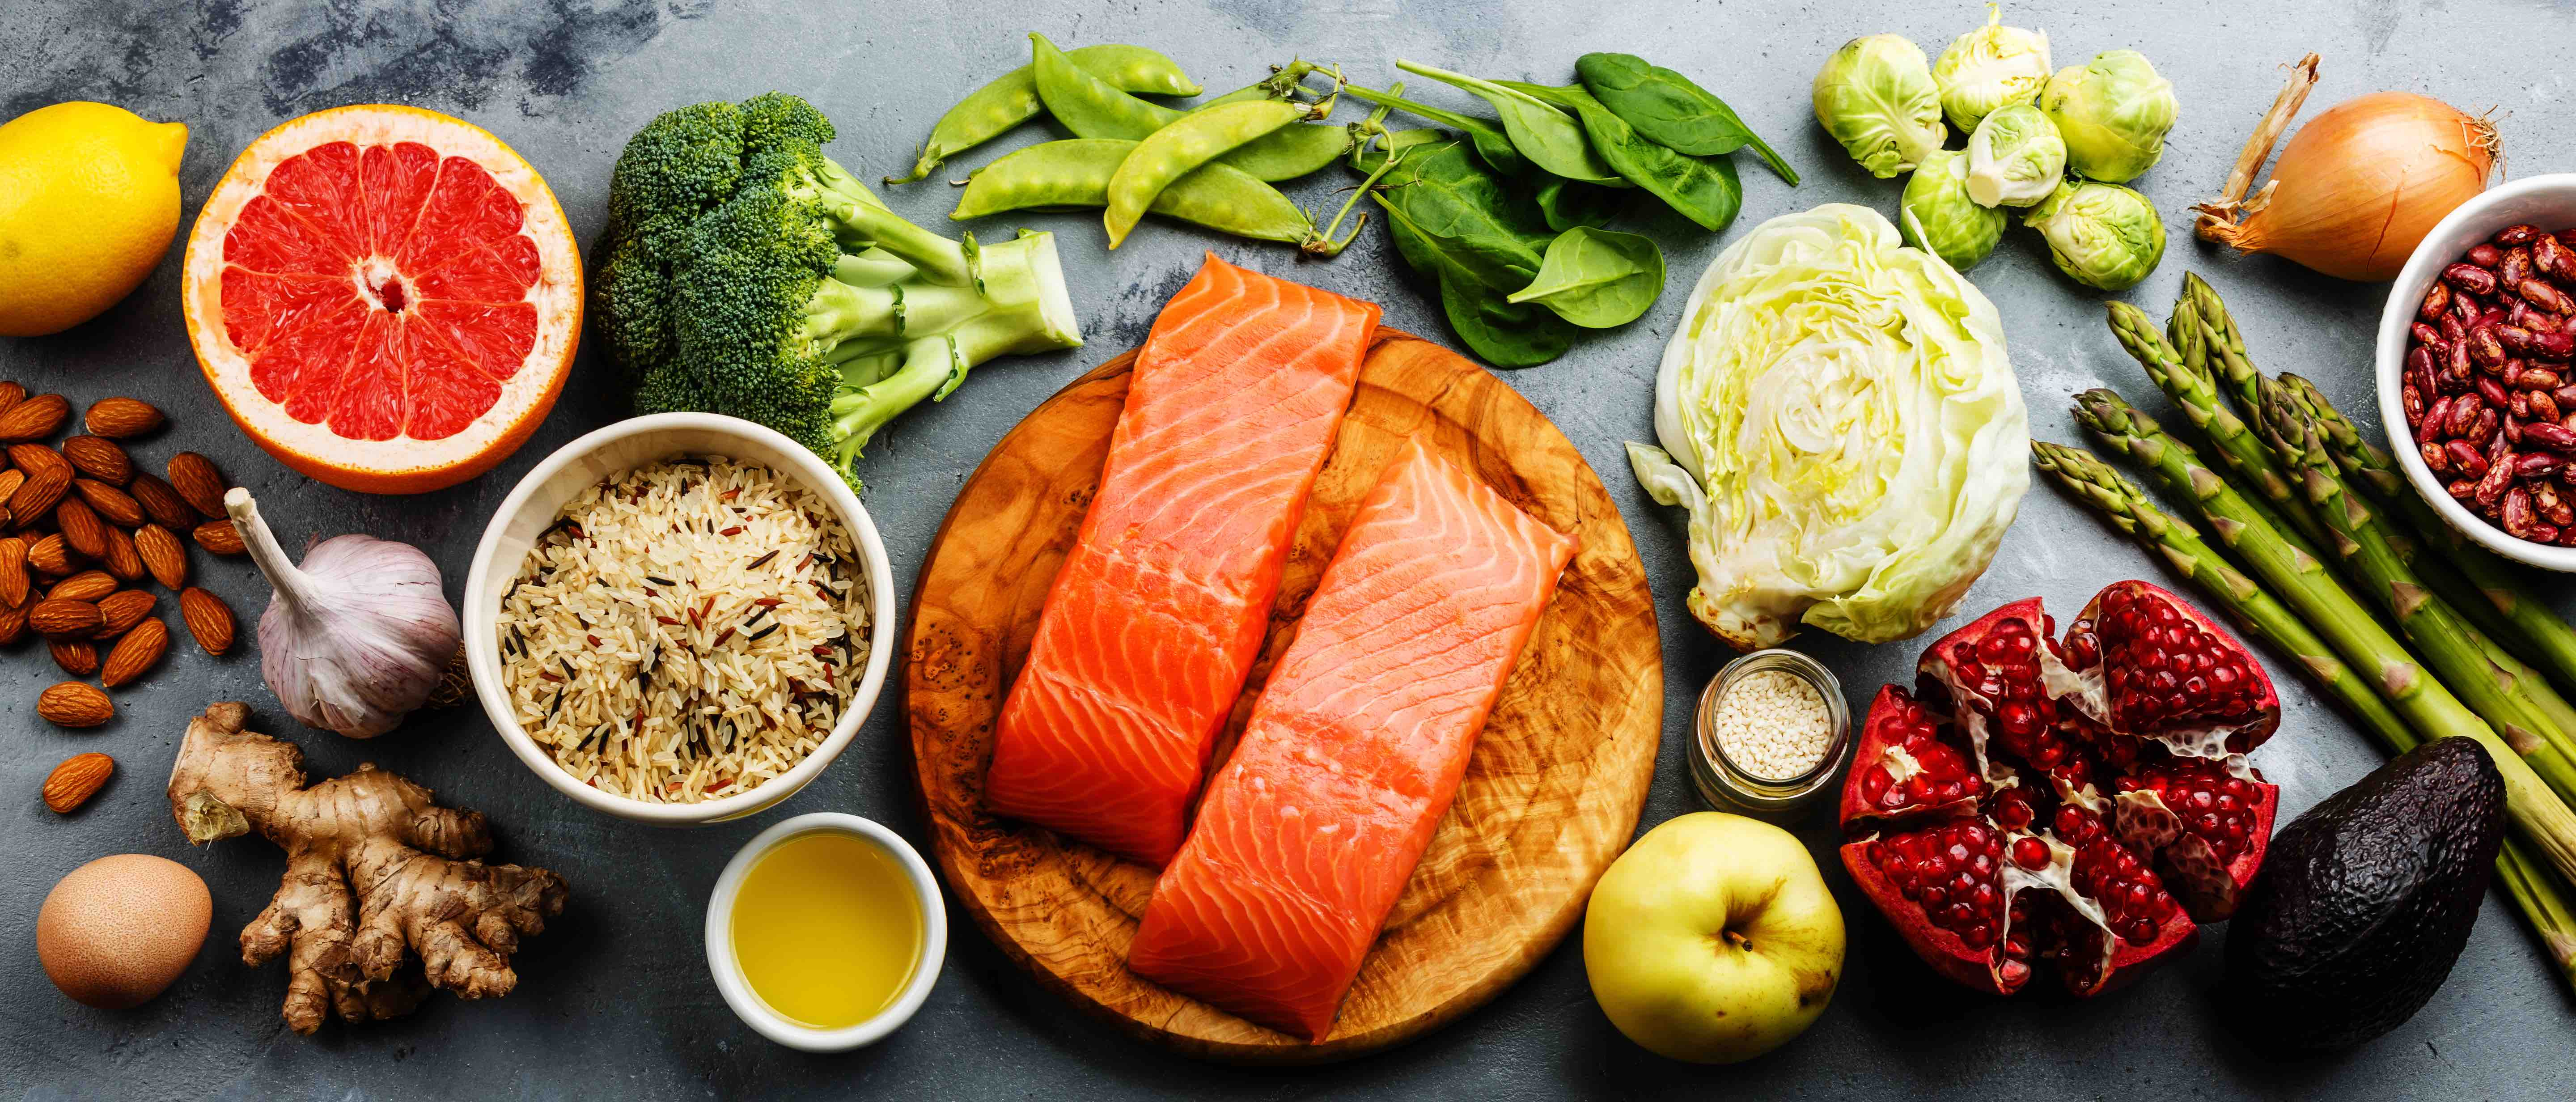 Healthy food clean eating selection: fish, fruit, vegetable